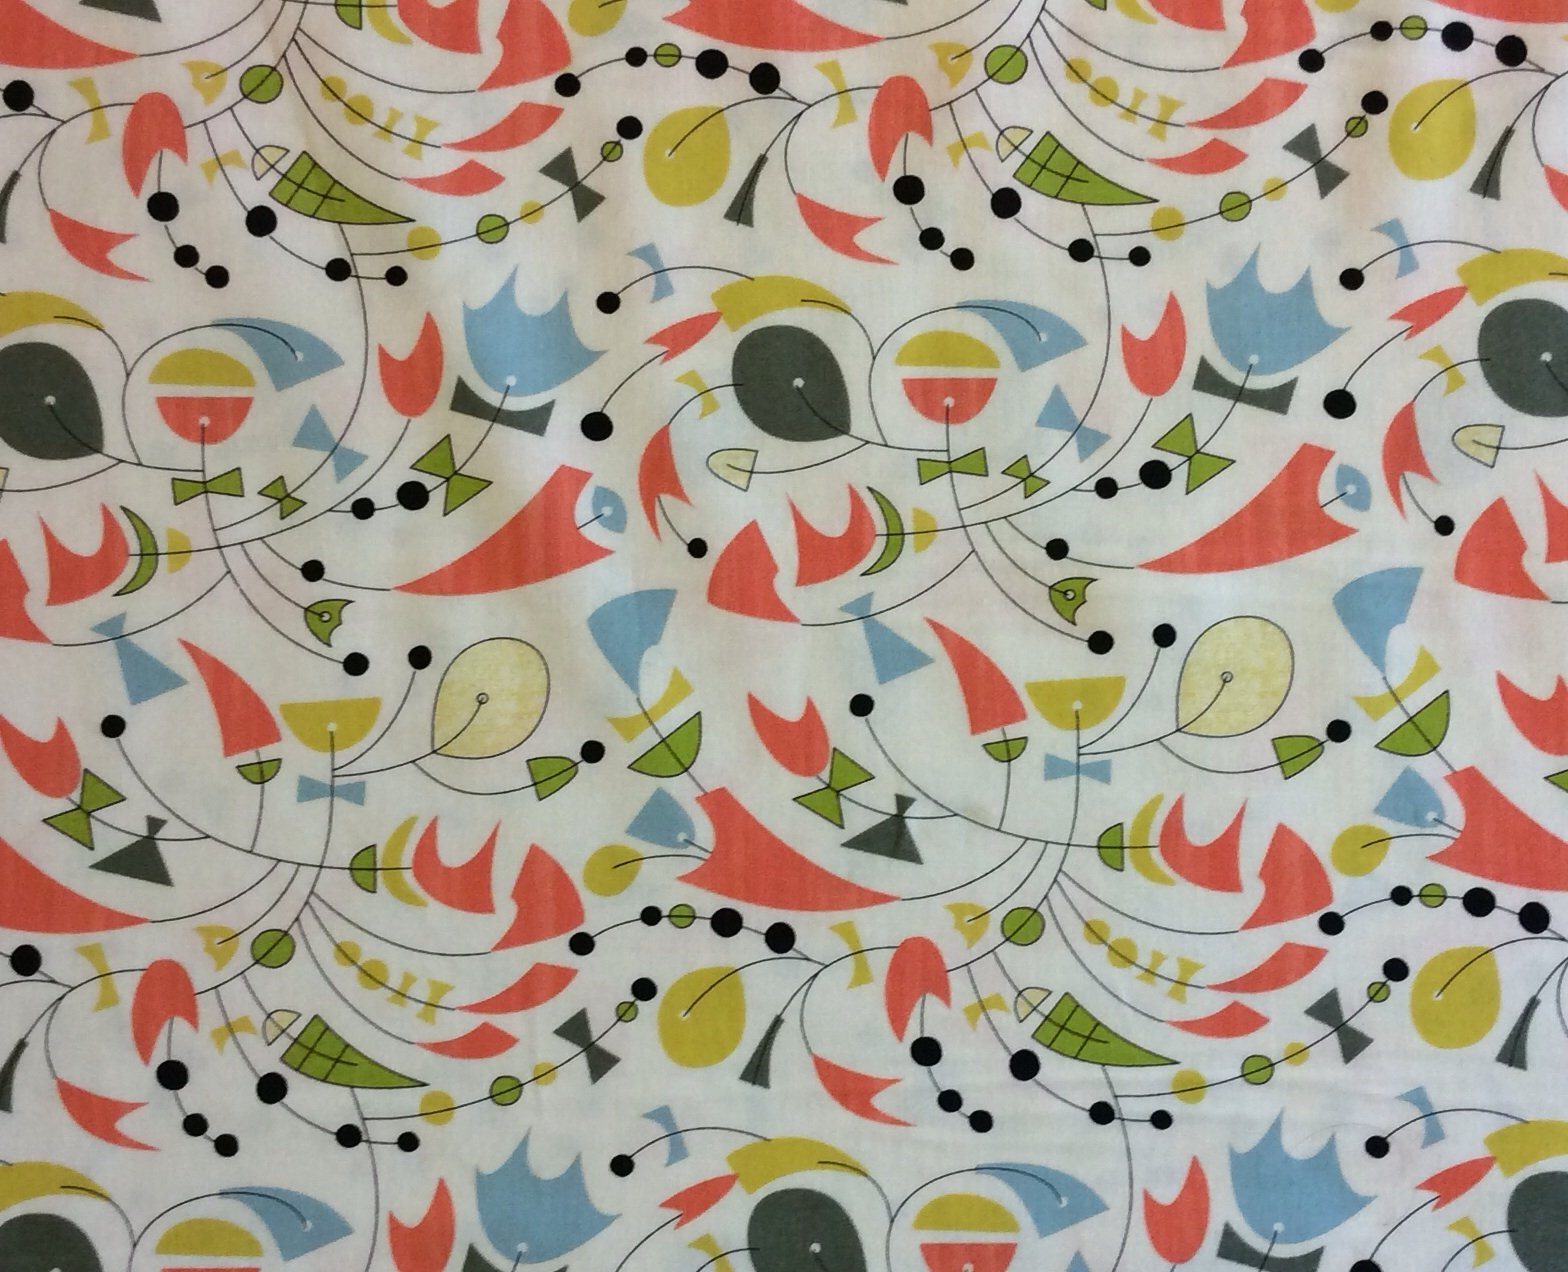 Atomic Mid Century Modern Moda Mobile Retro Boomerang Art 50s Style Cotton Quilting Fabric  MO27